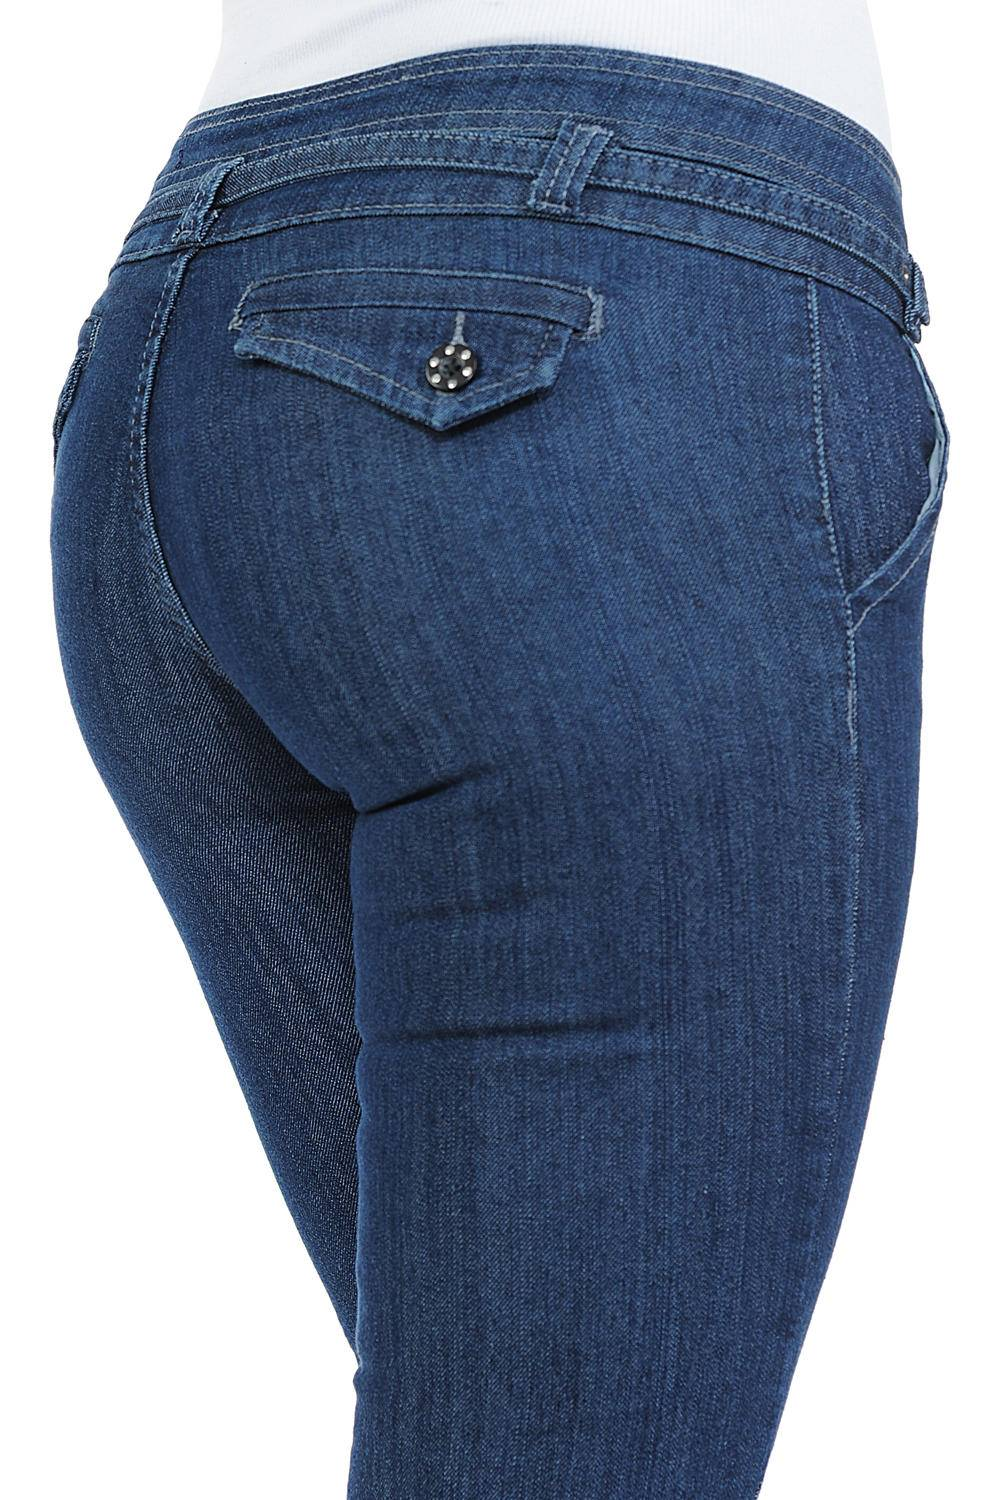 best loved c3fc6 0ab54 Pasion Women's Jeans · Push Up · Style B747